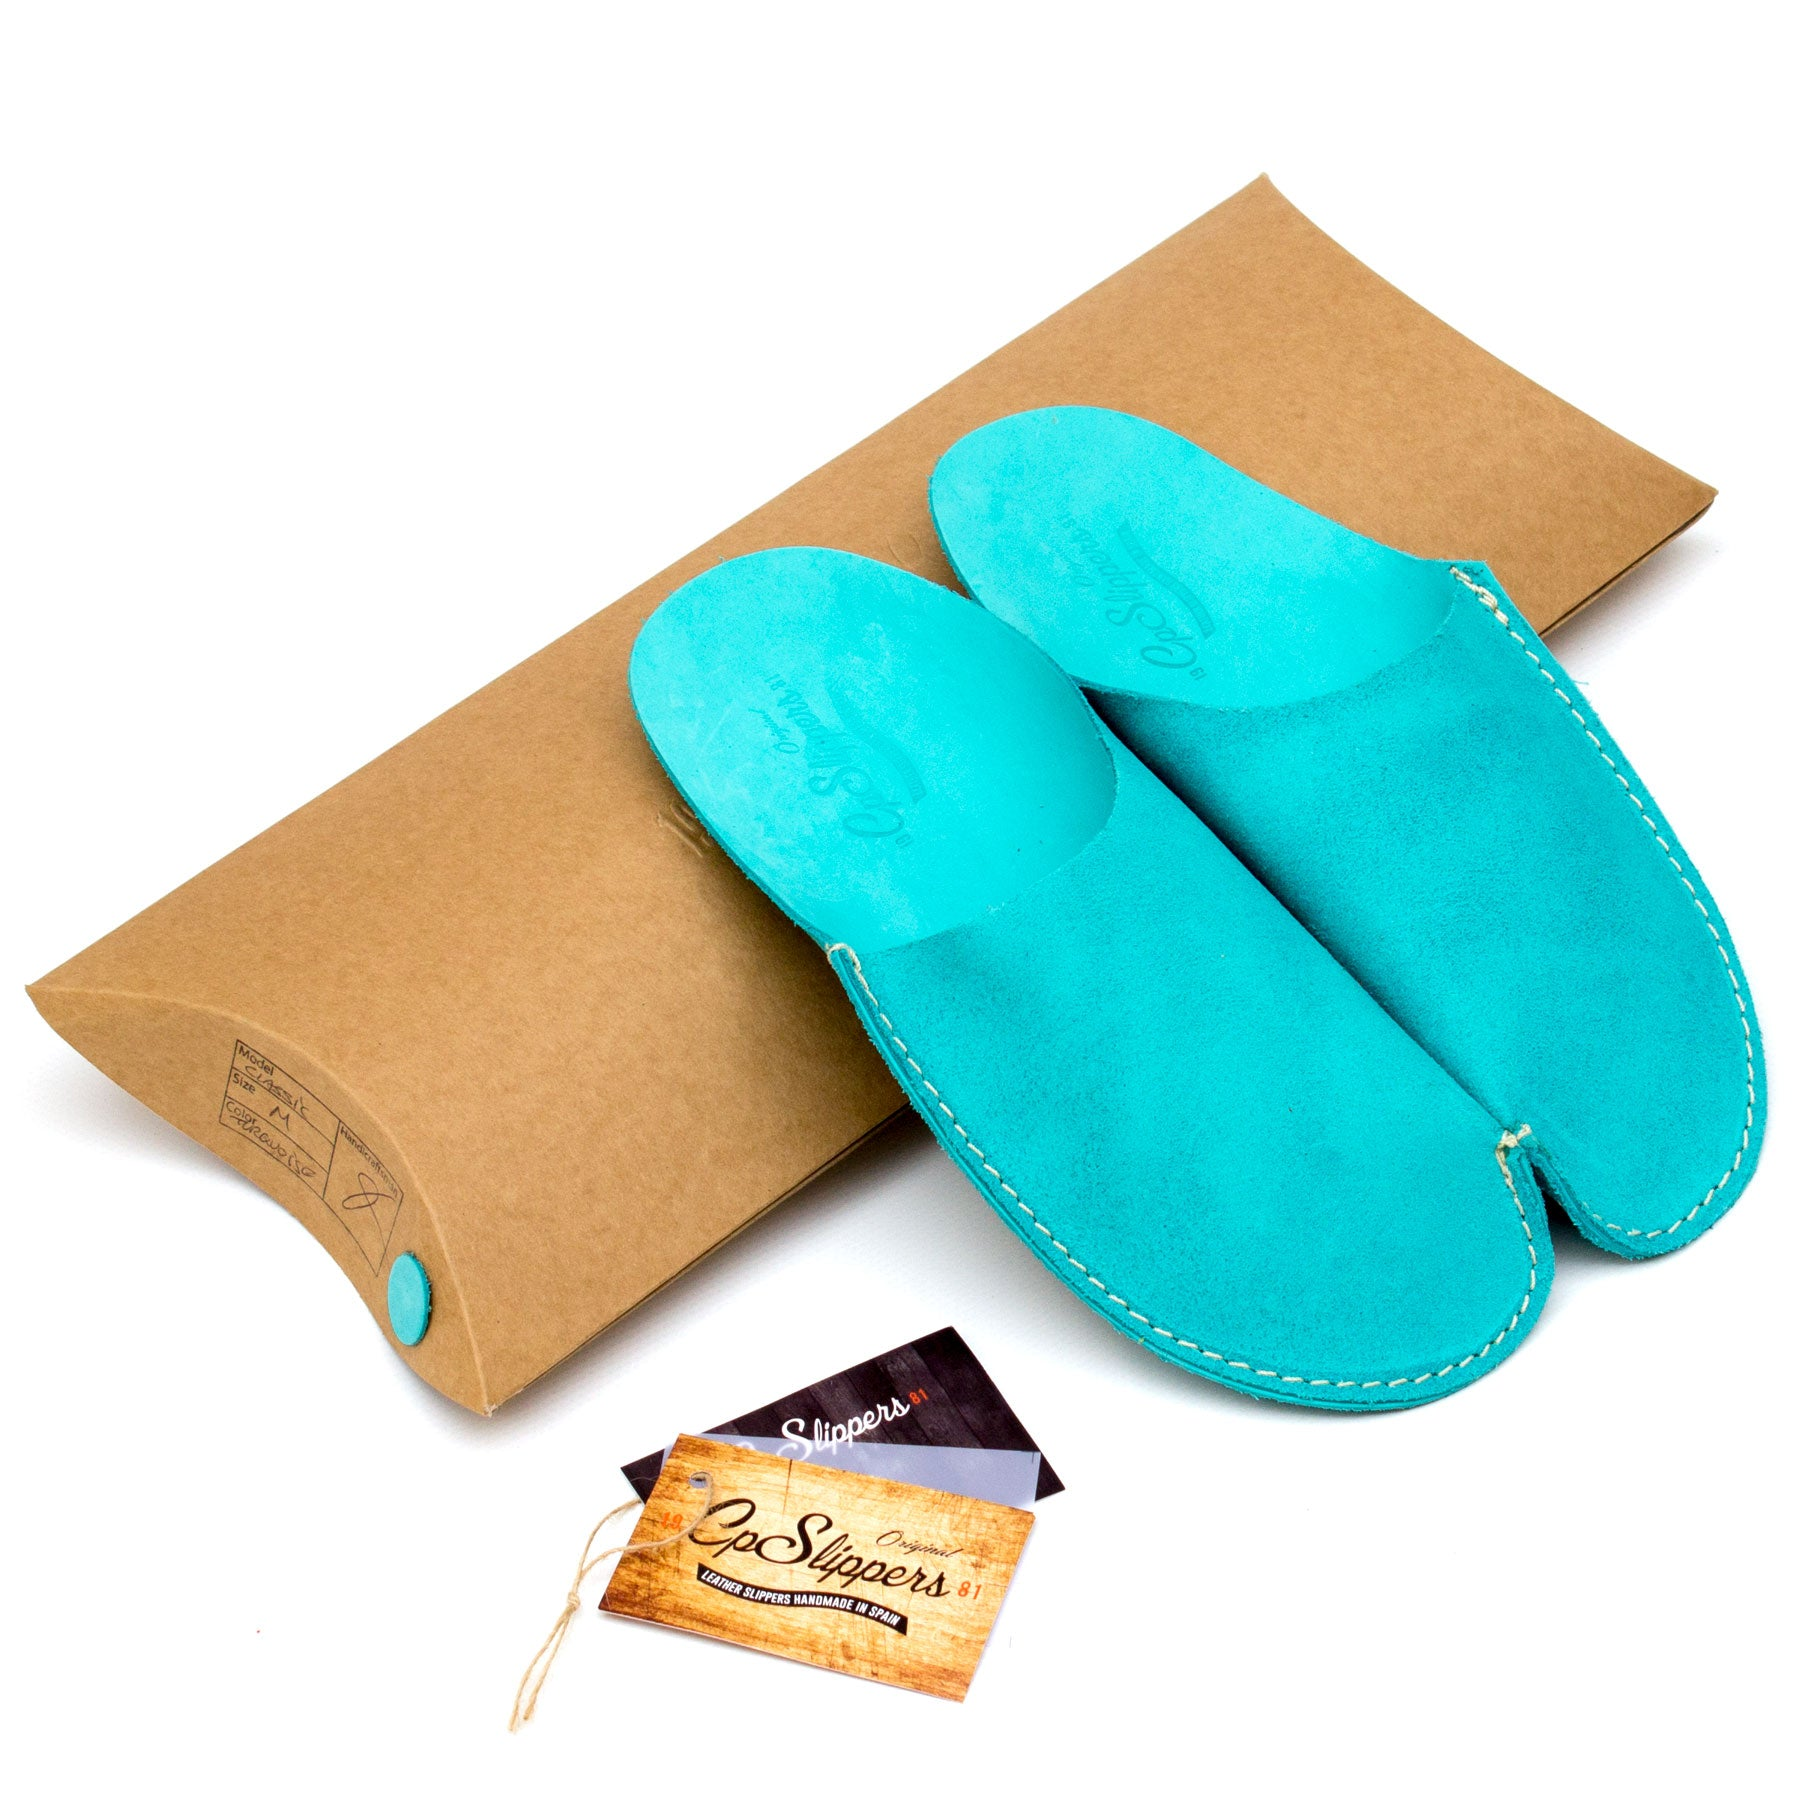 Turquoise CP Slippers Minimalist slipper shoes for man and woman